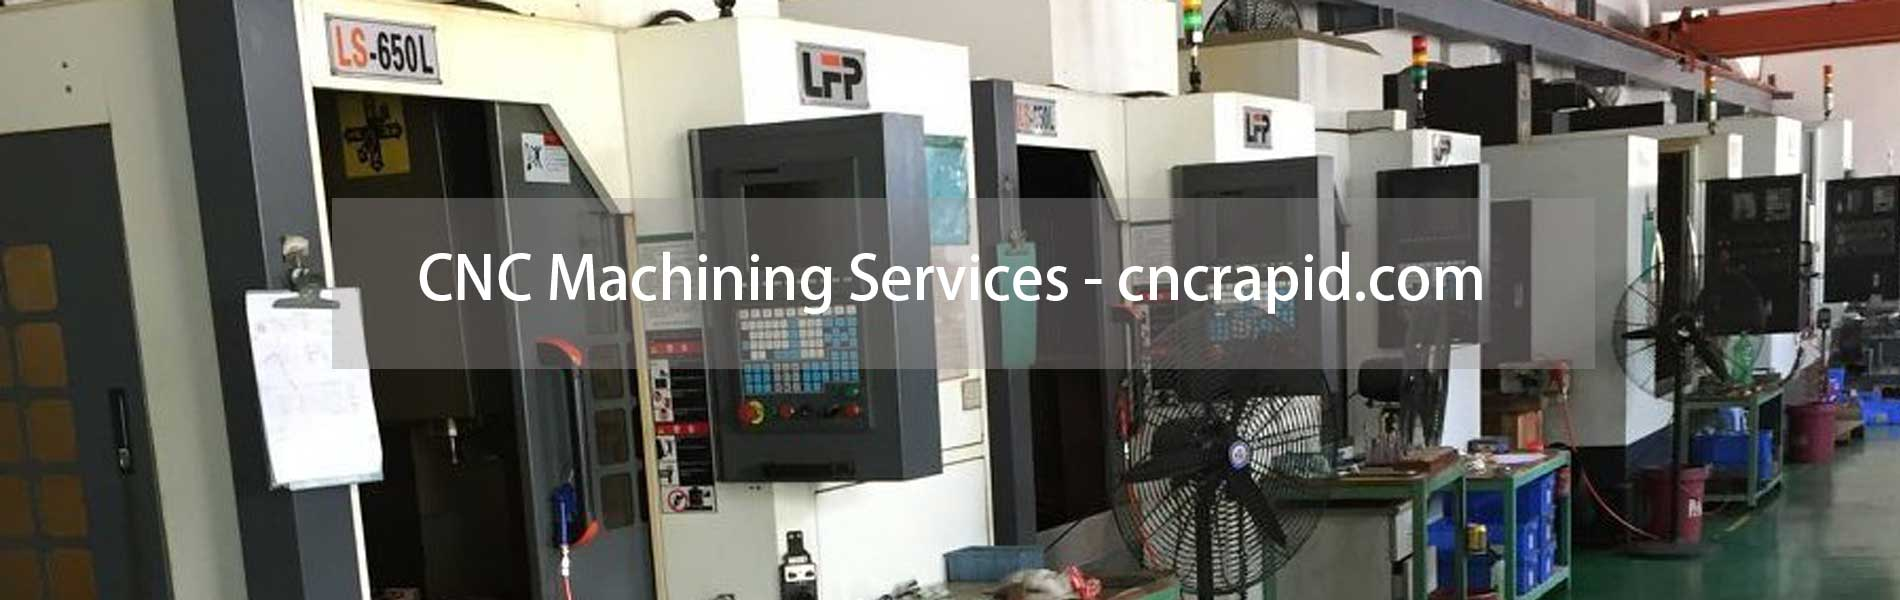 CNC Machining Services, CNC machining China, CNC parts machining factory in China